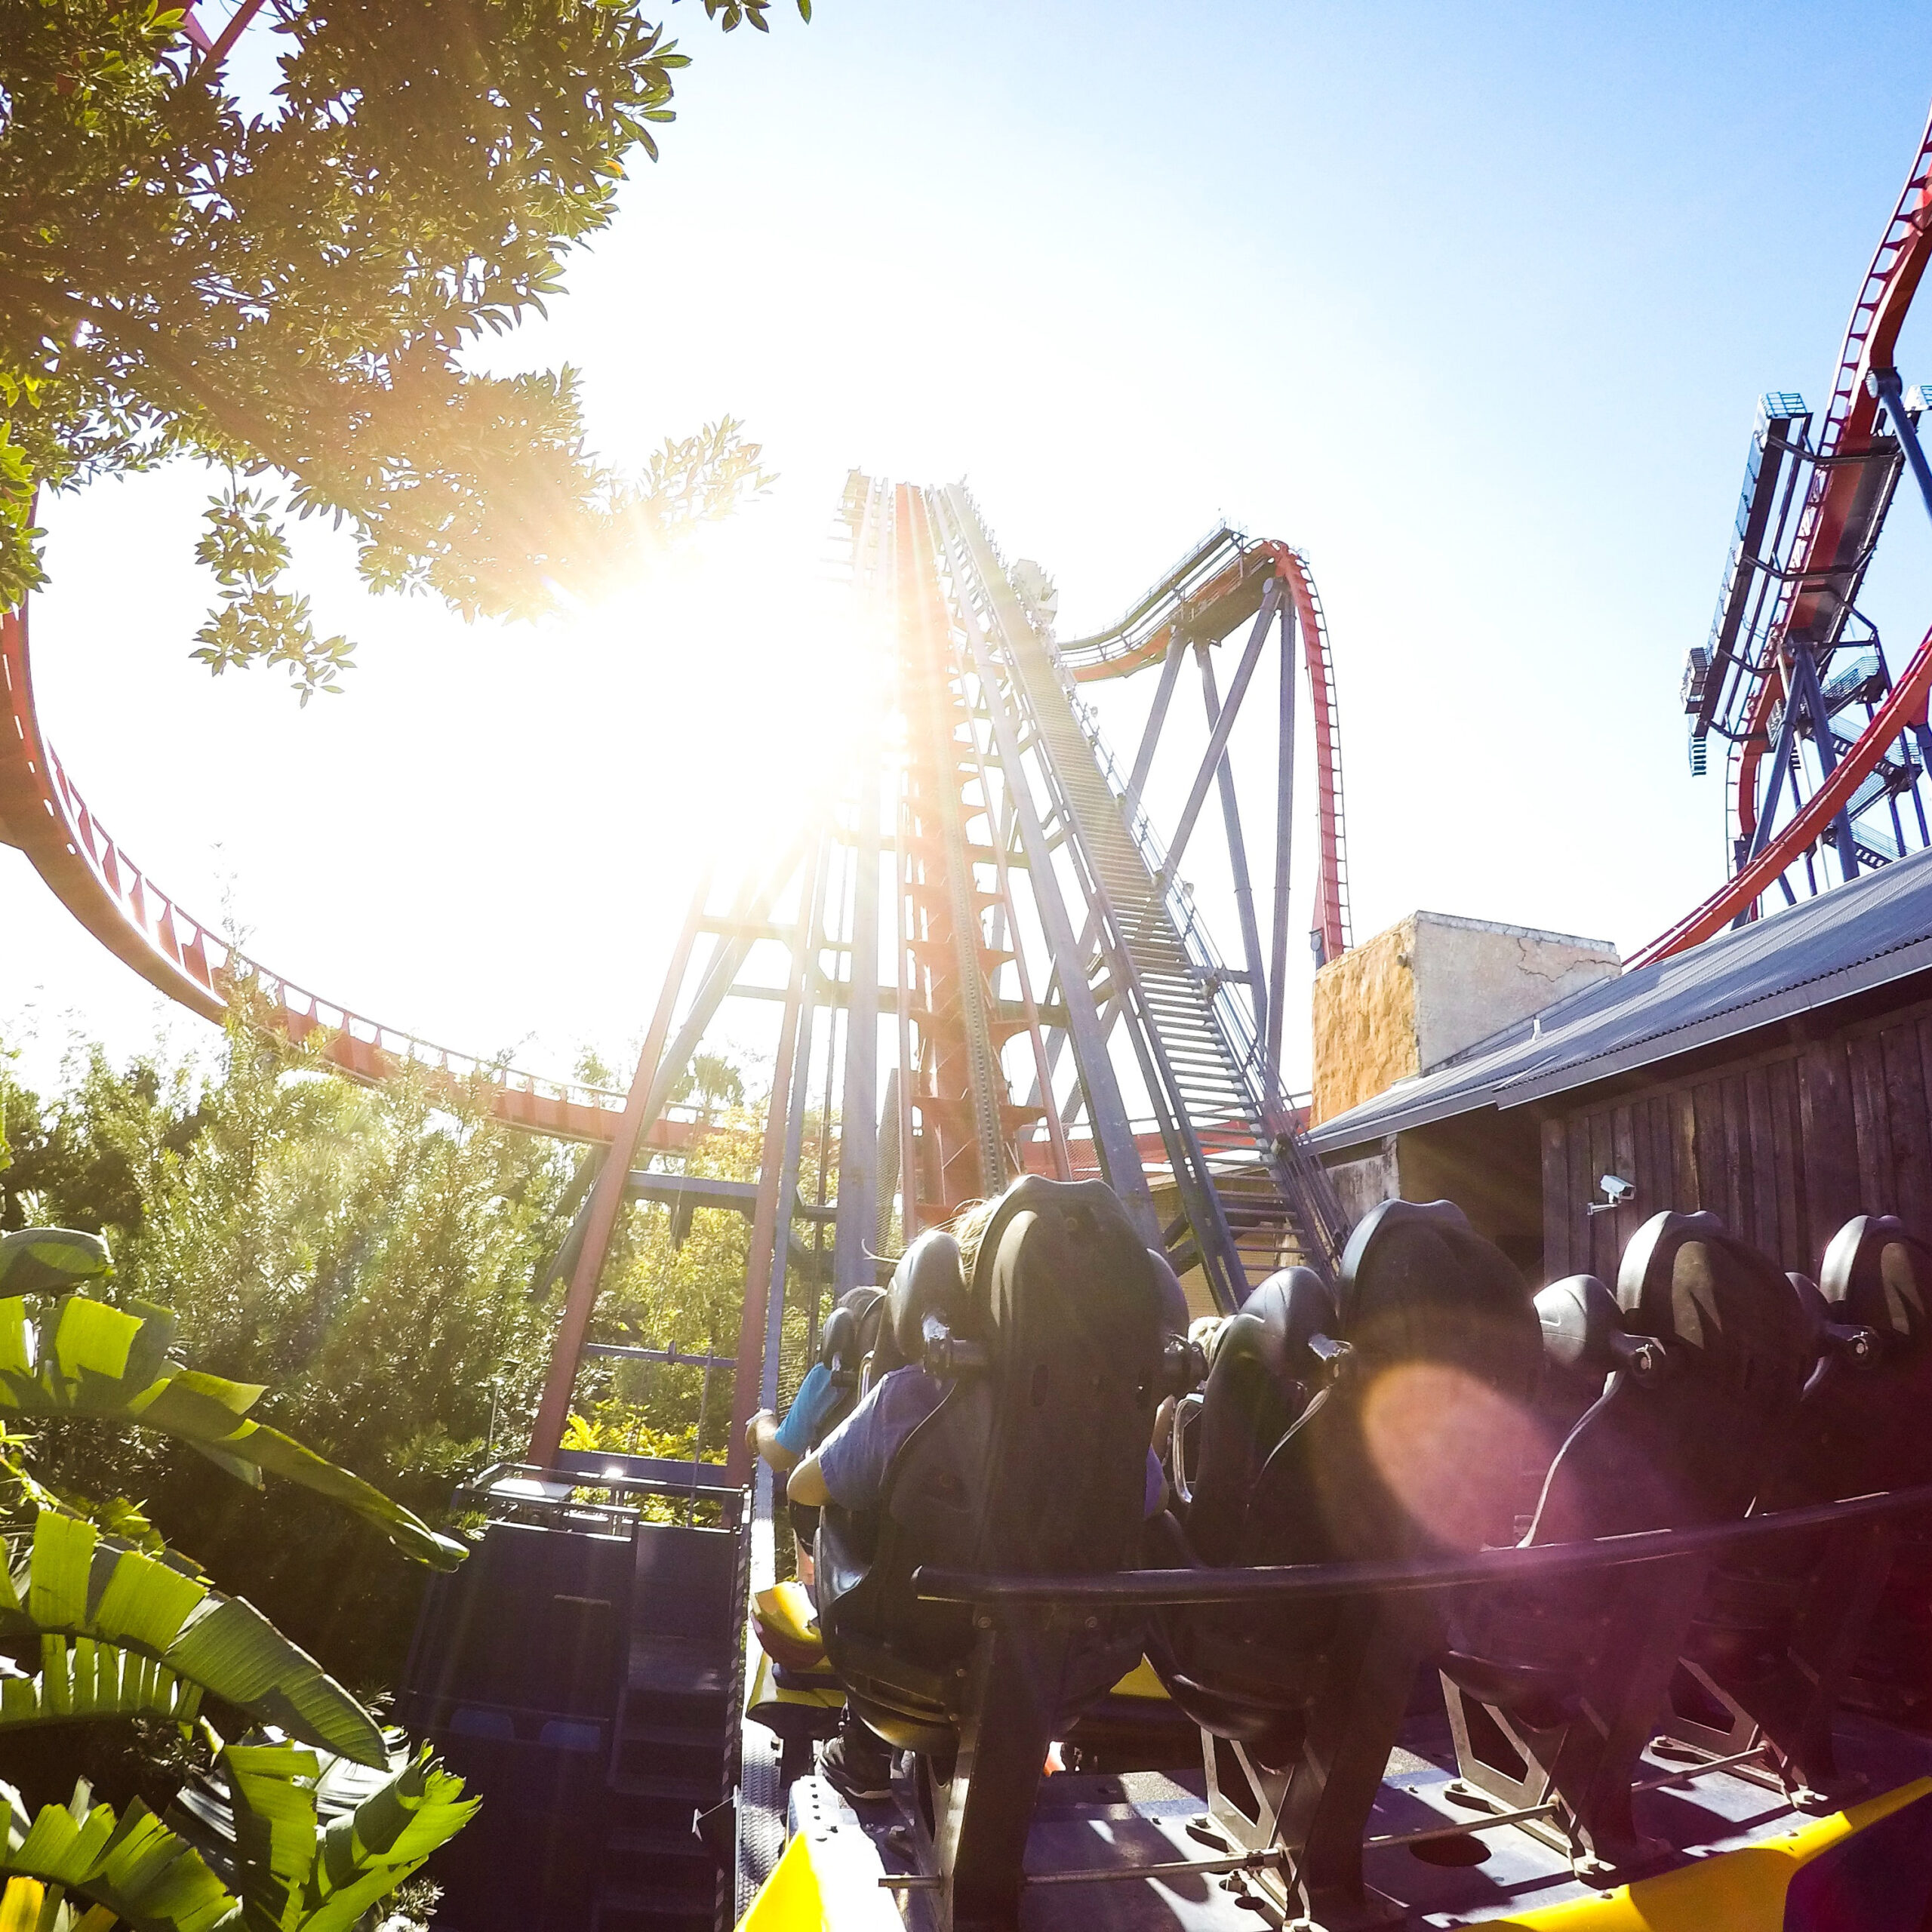 roller coaster at theme park